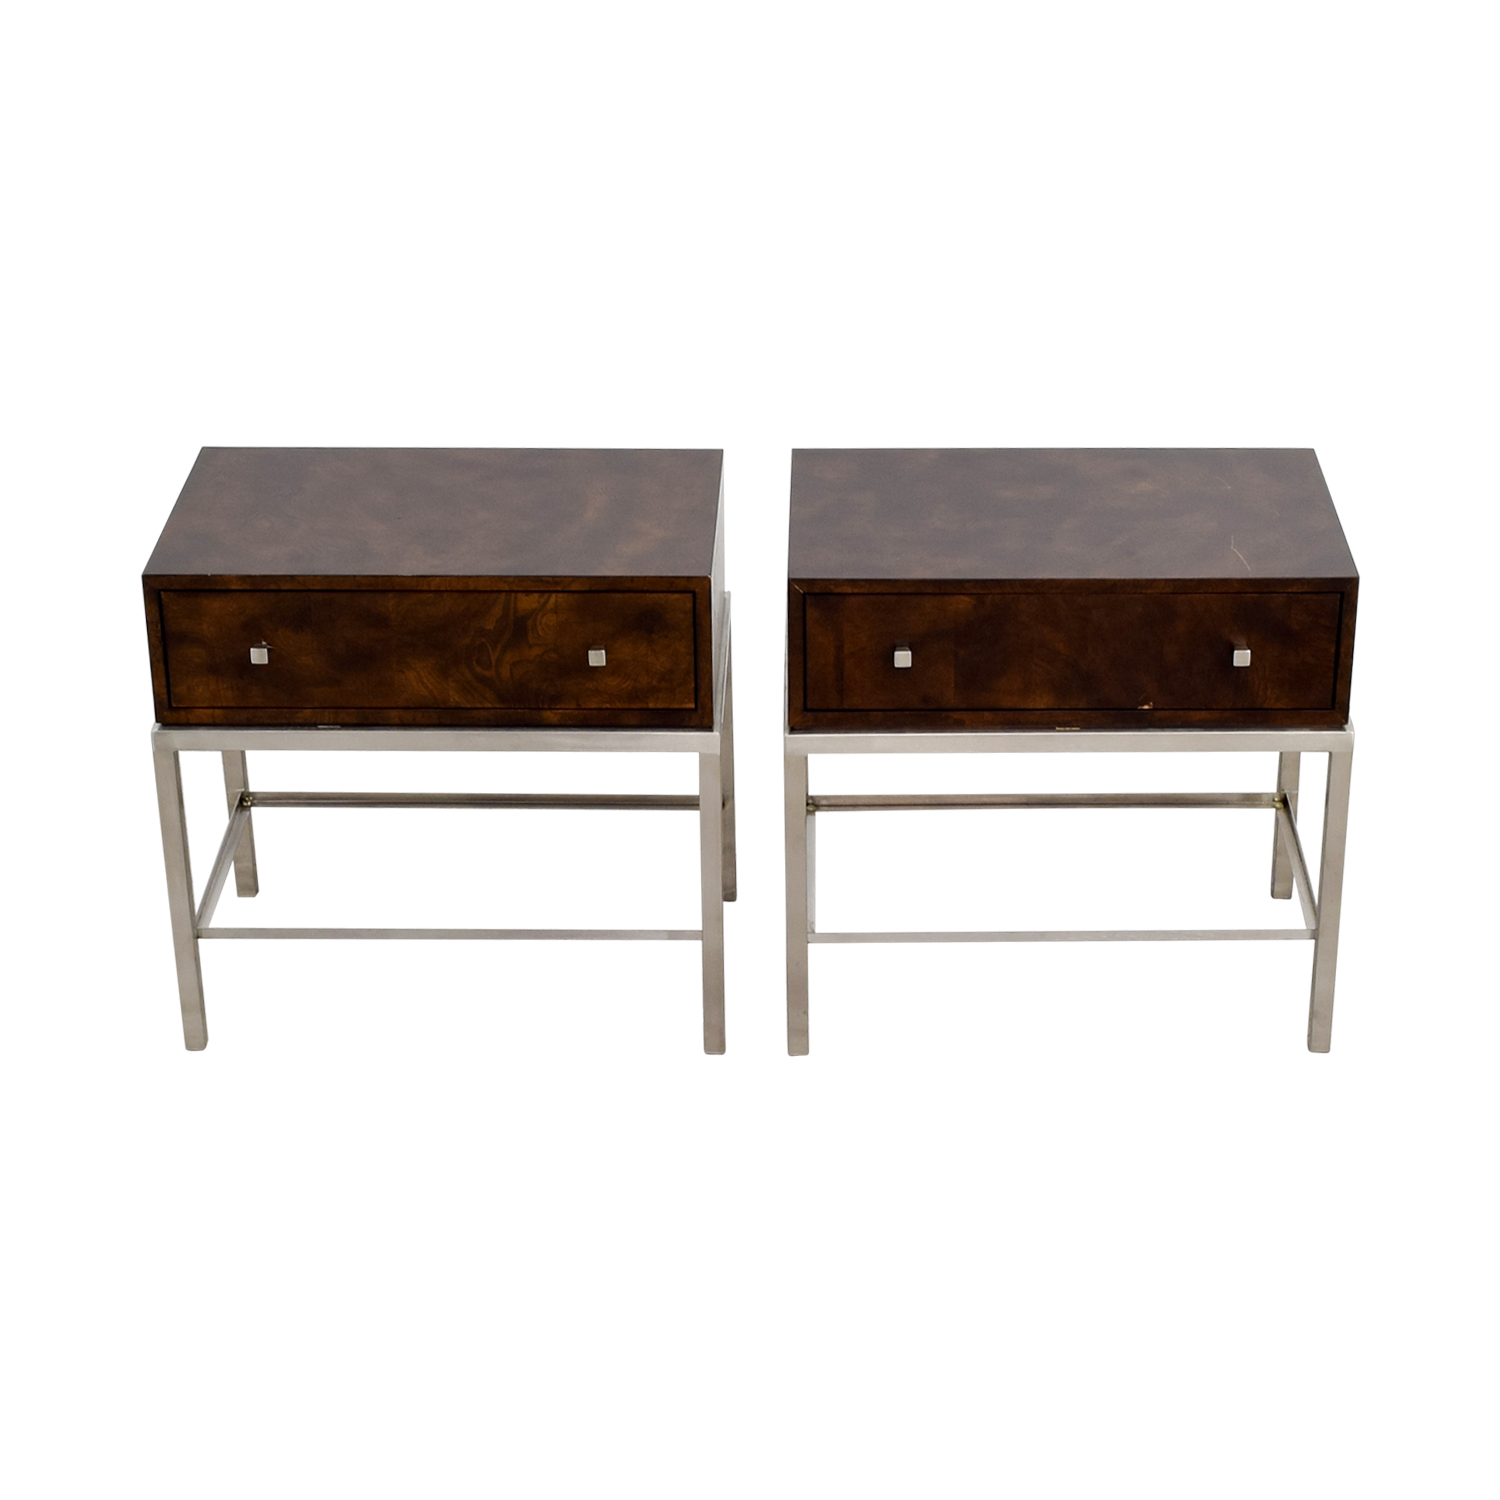 Ethan Allen Wood & Metal Nightstand sale